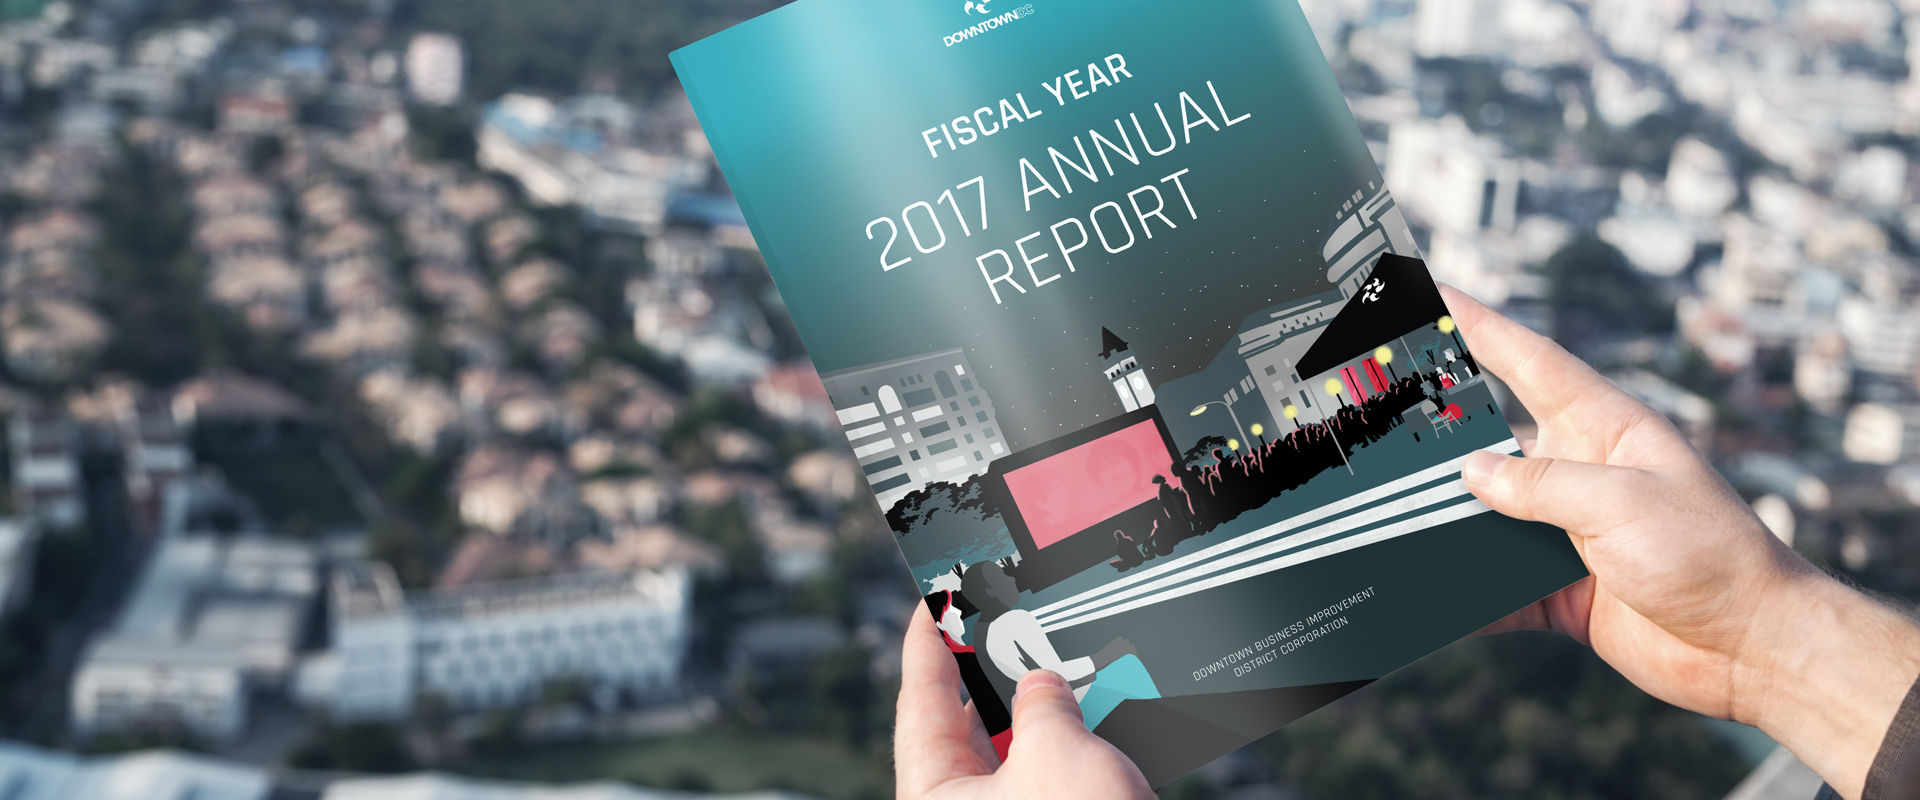 MOYA Showcases Branding Services for DowntownDC's Annual Report